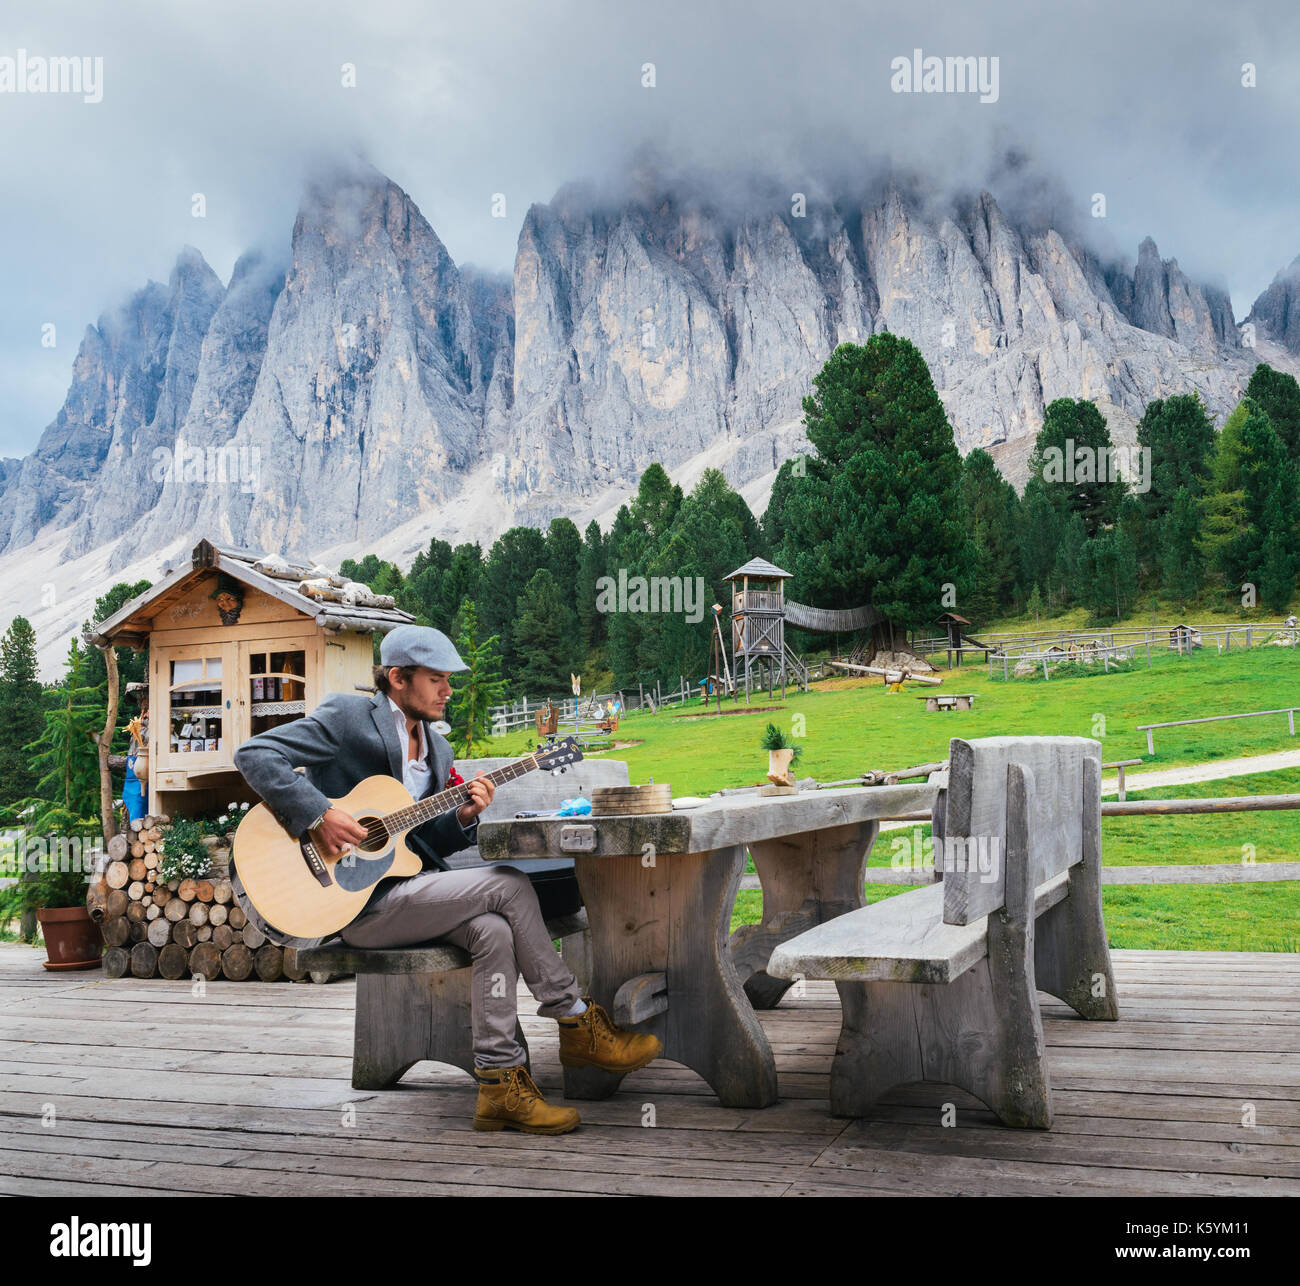 young-well-dressed-man-30-35-playing-a-guitar-with-italian-dolomites-K5YM11.jpg